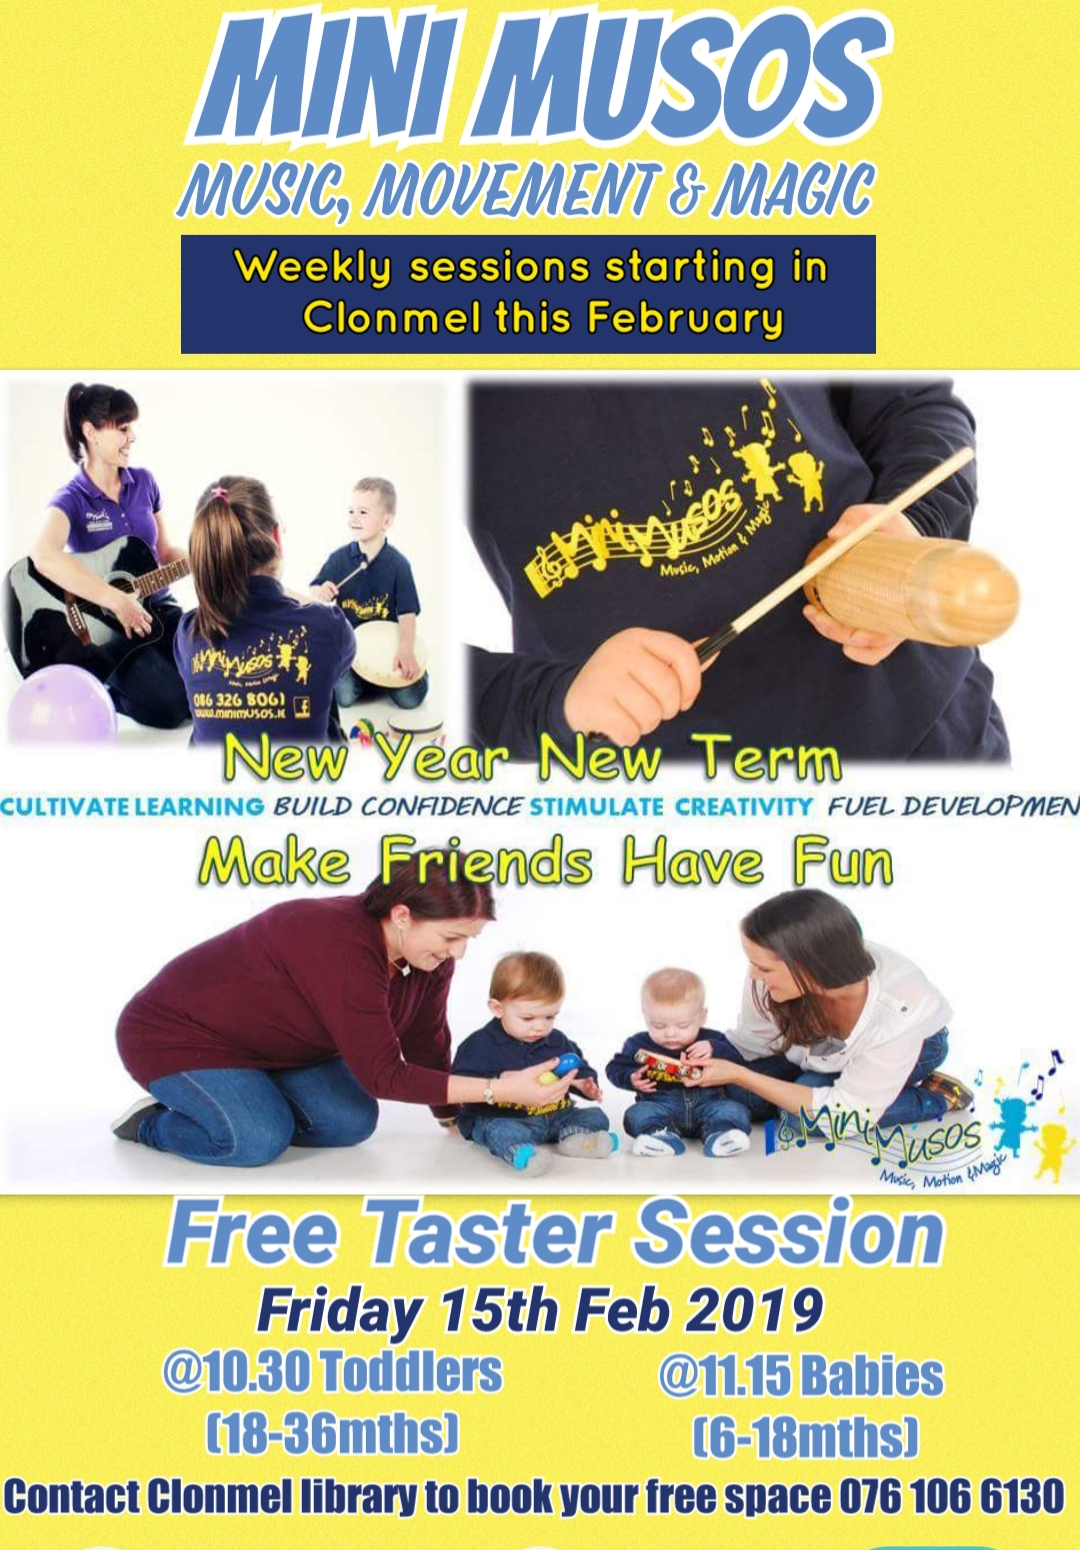 Minimusos Free Introductory Class For Babies And Toddlers At Clonmel Library